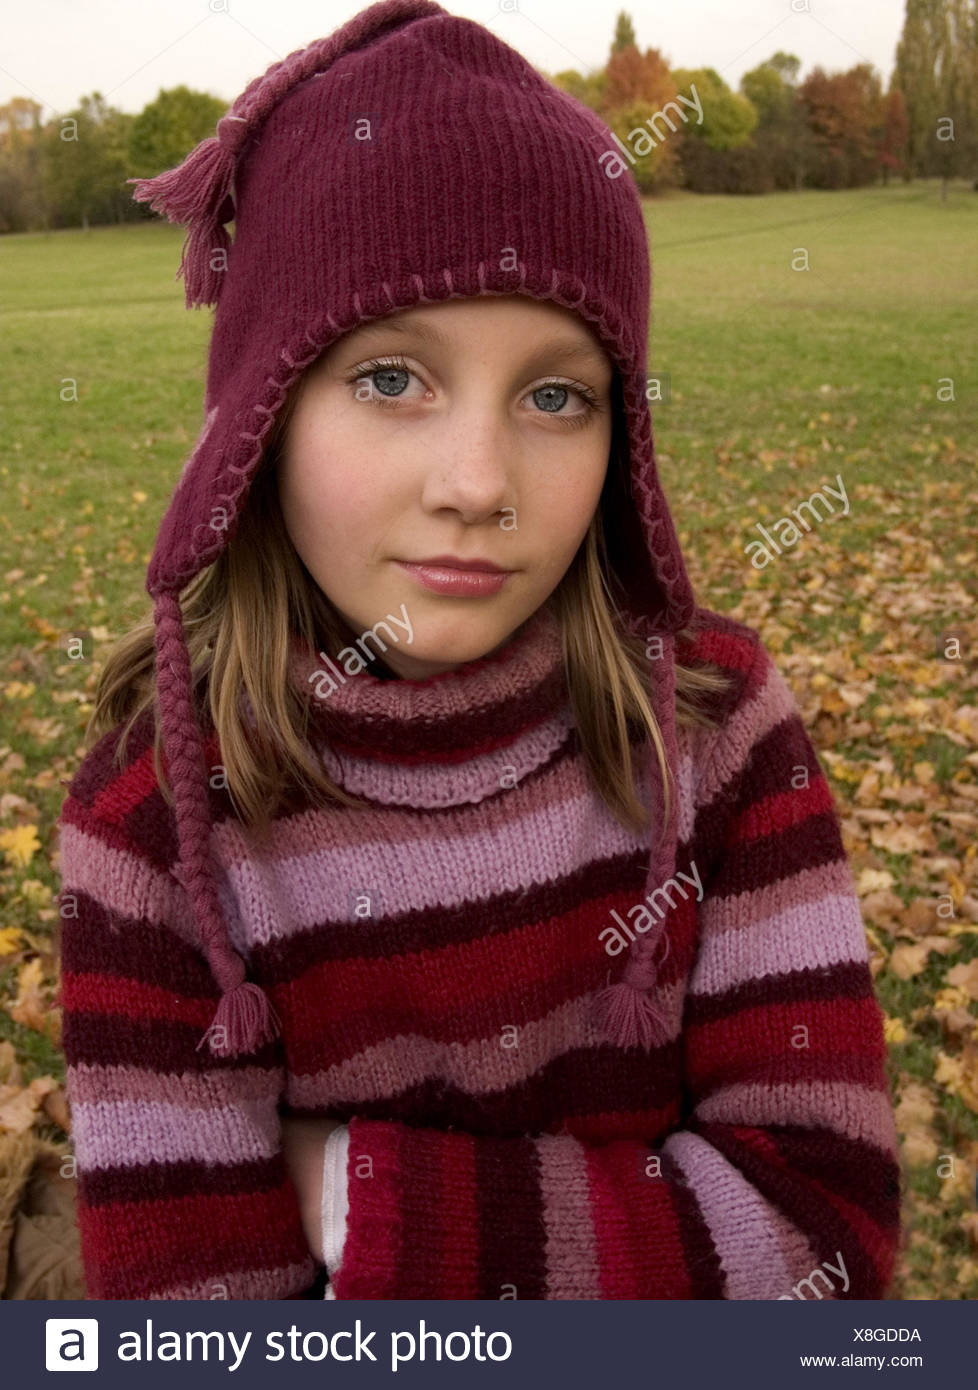 Girls, rope sweaters, cap,  Look camera, portrait, autumn,   Series, 10-15 years, teenager girls, teenagers, blond, sweaters, roved, stands, poor crosses,  waits, seriously, however sorrowfully, loneliness, outside, - Stock Image